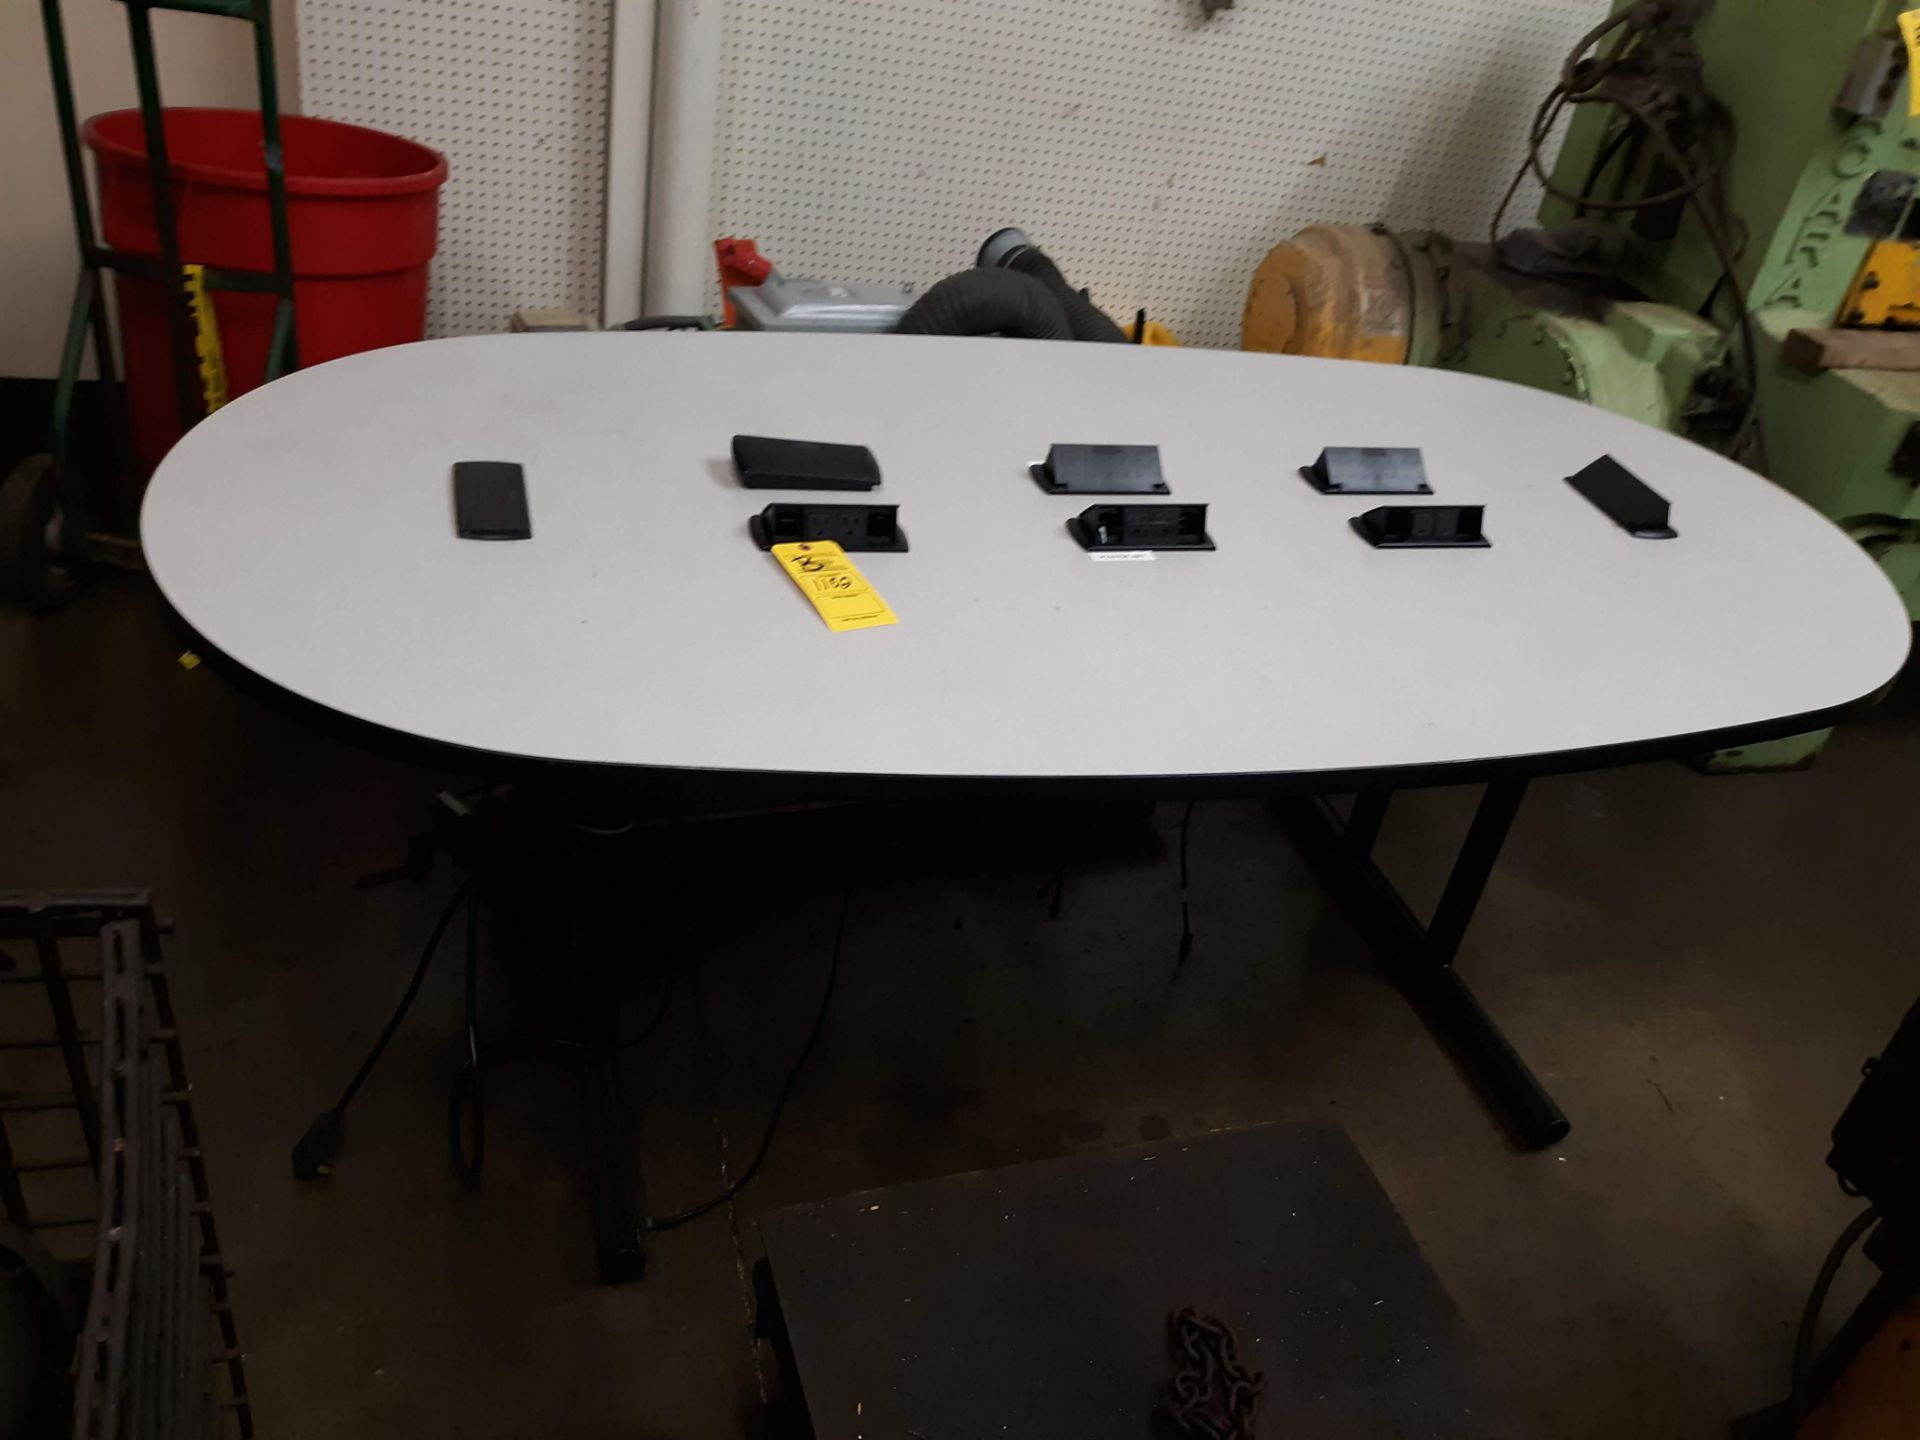 Lot 1102 - CONFERENCE TABLE W/ ELECTRIC OUTLETS (LOCATED AT: 432 COUNCIL DRIVE, FORT WAYNE, IN 46825)